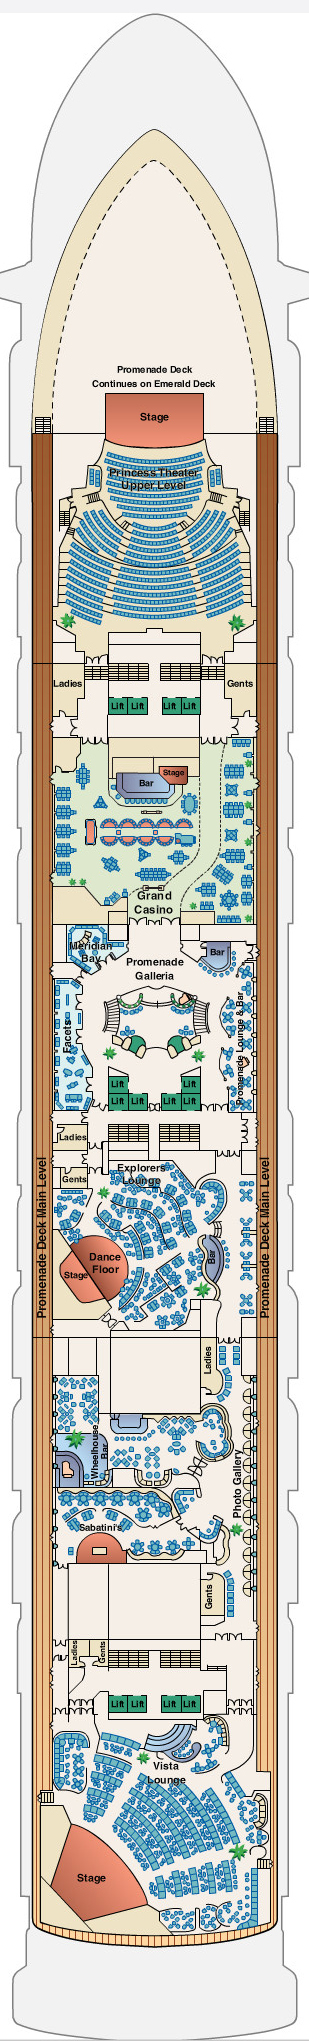 Star Princess Promenade Deck 7 layout